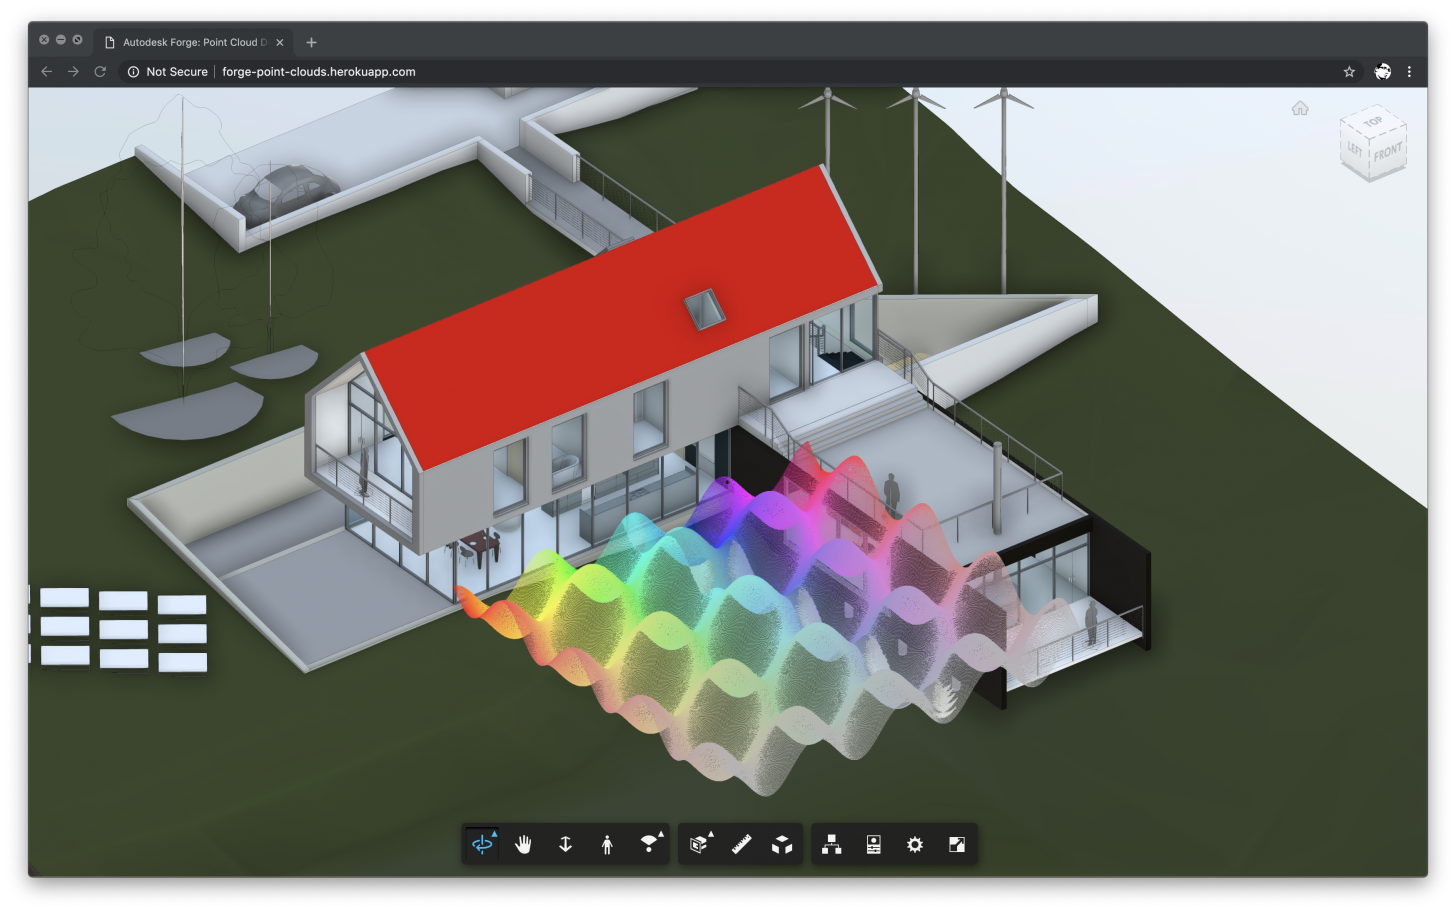 Point clouds in Forge Viewer.